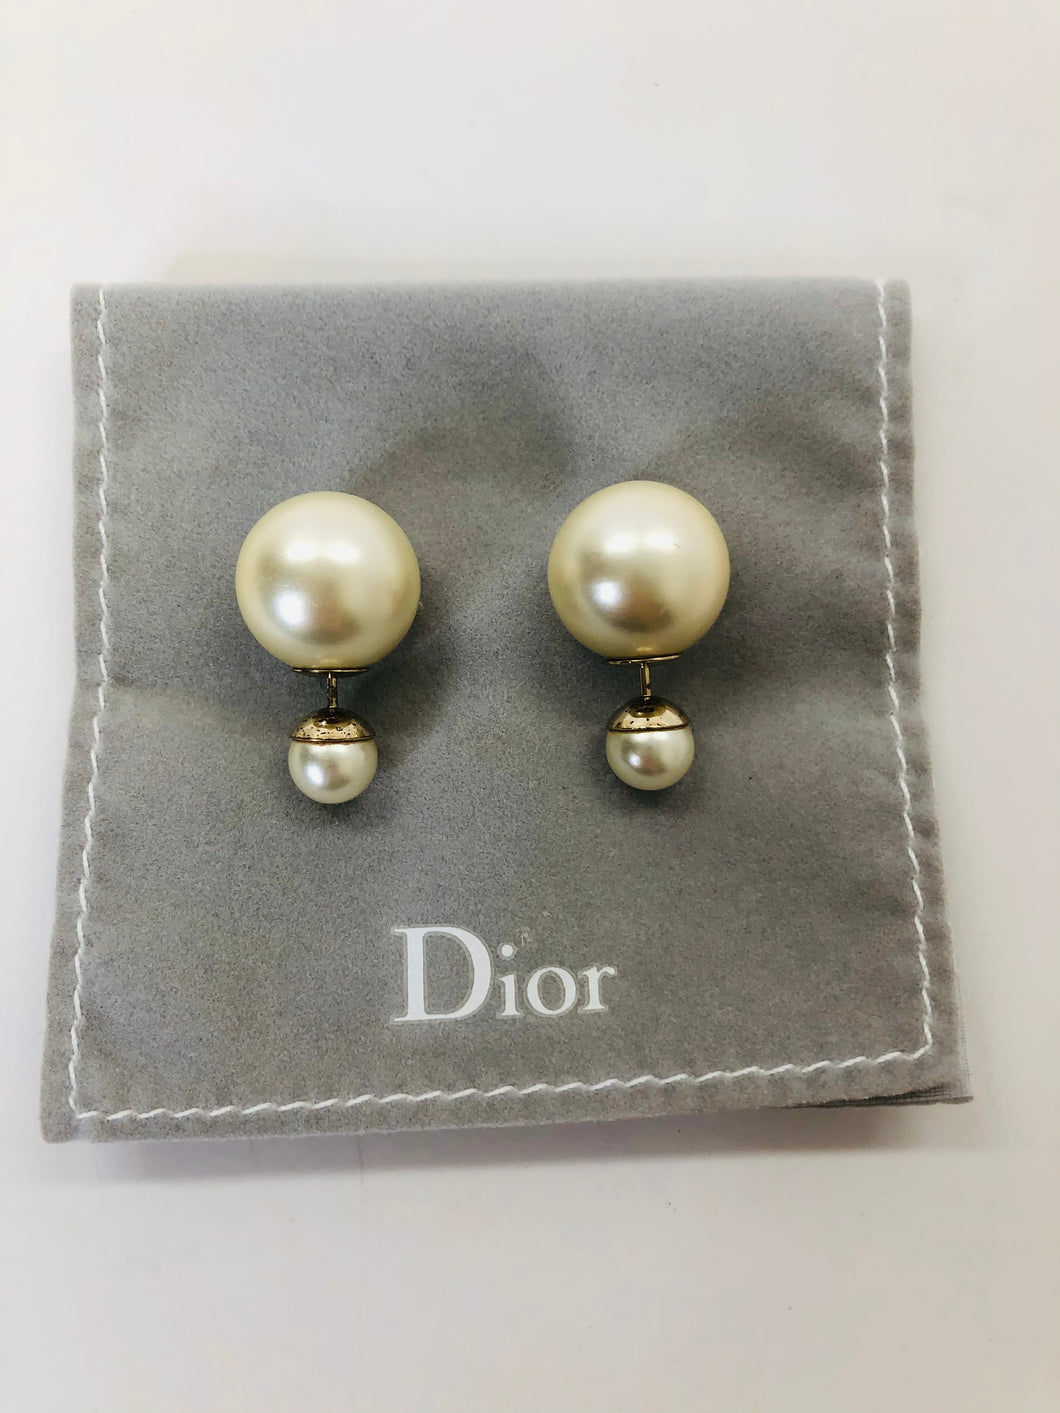 Christian Dior Tribales Earrings